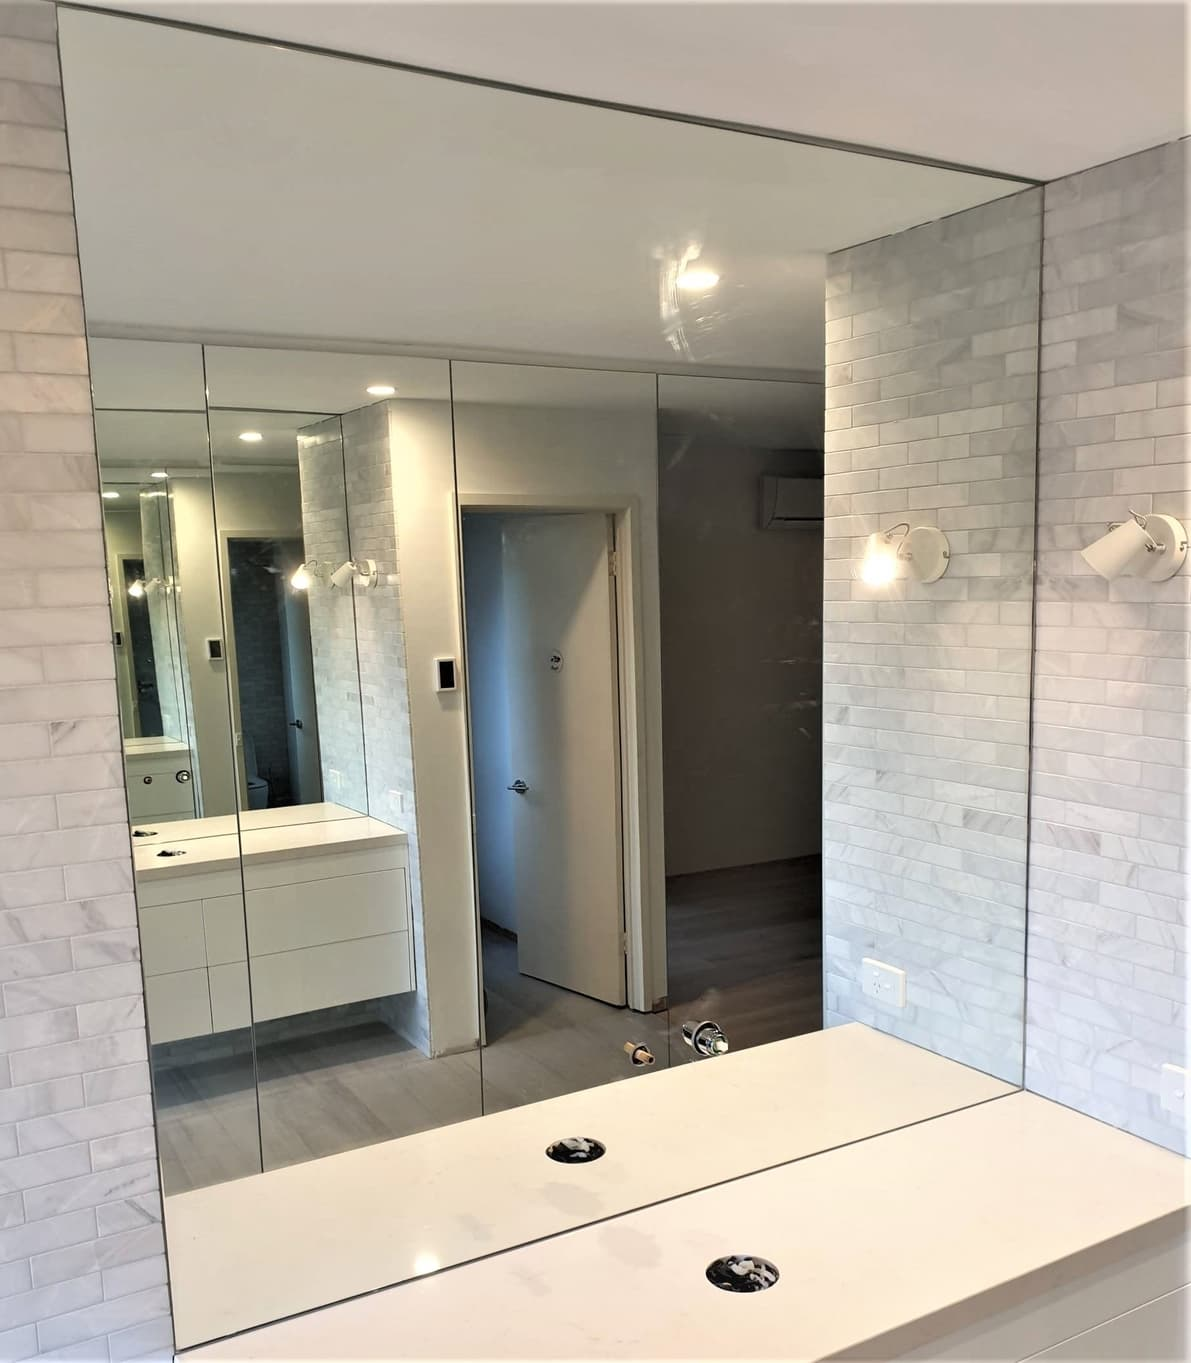 Vanity mirror in bathroom